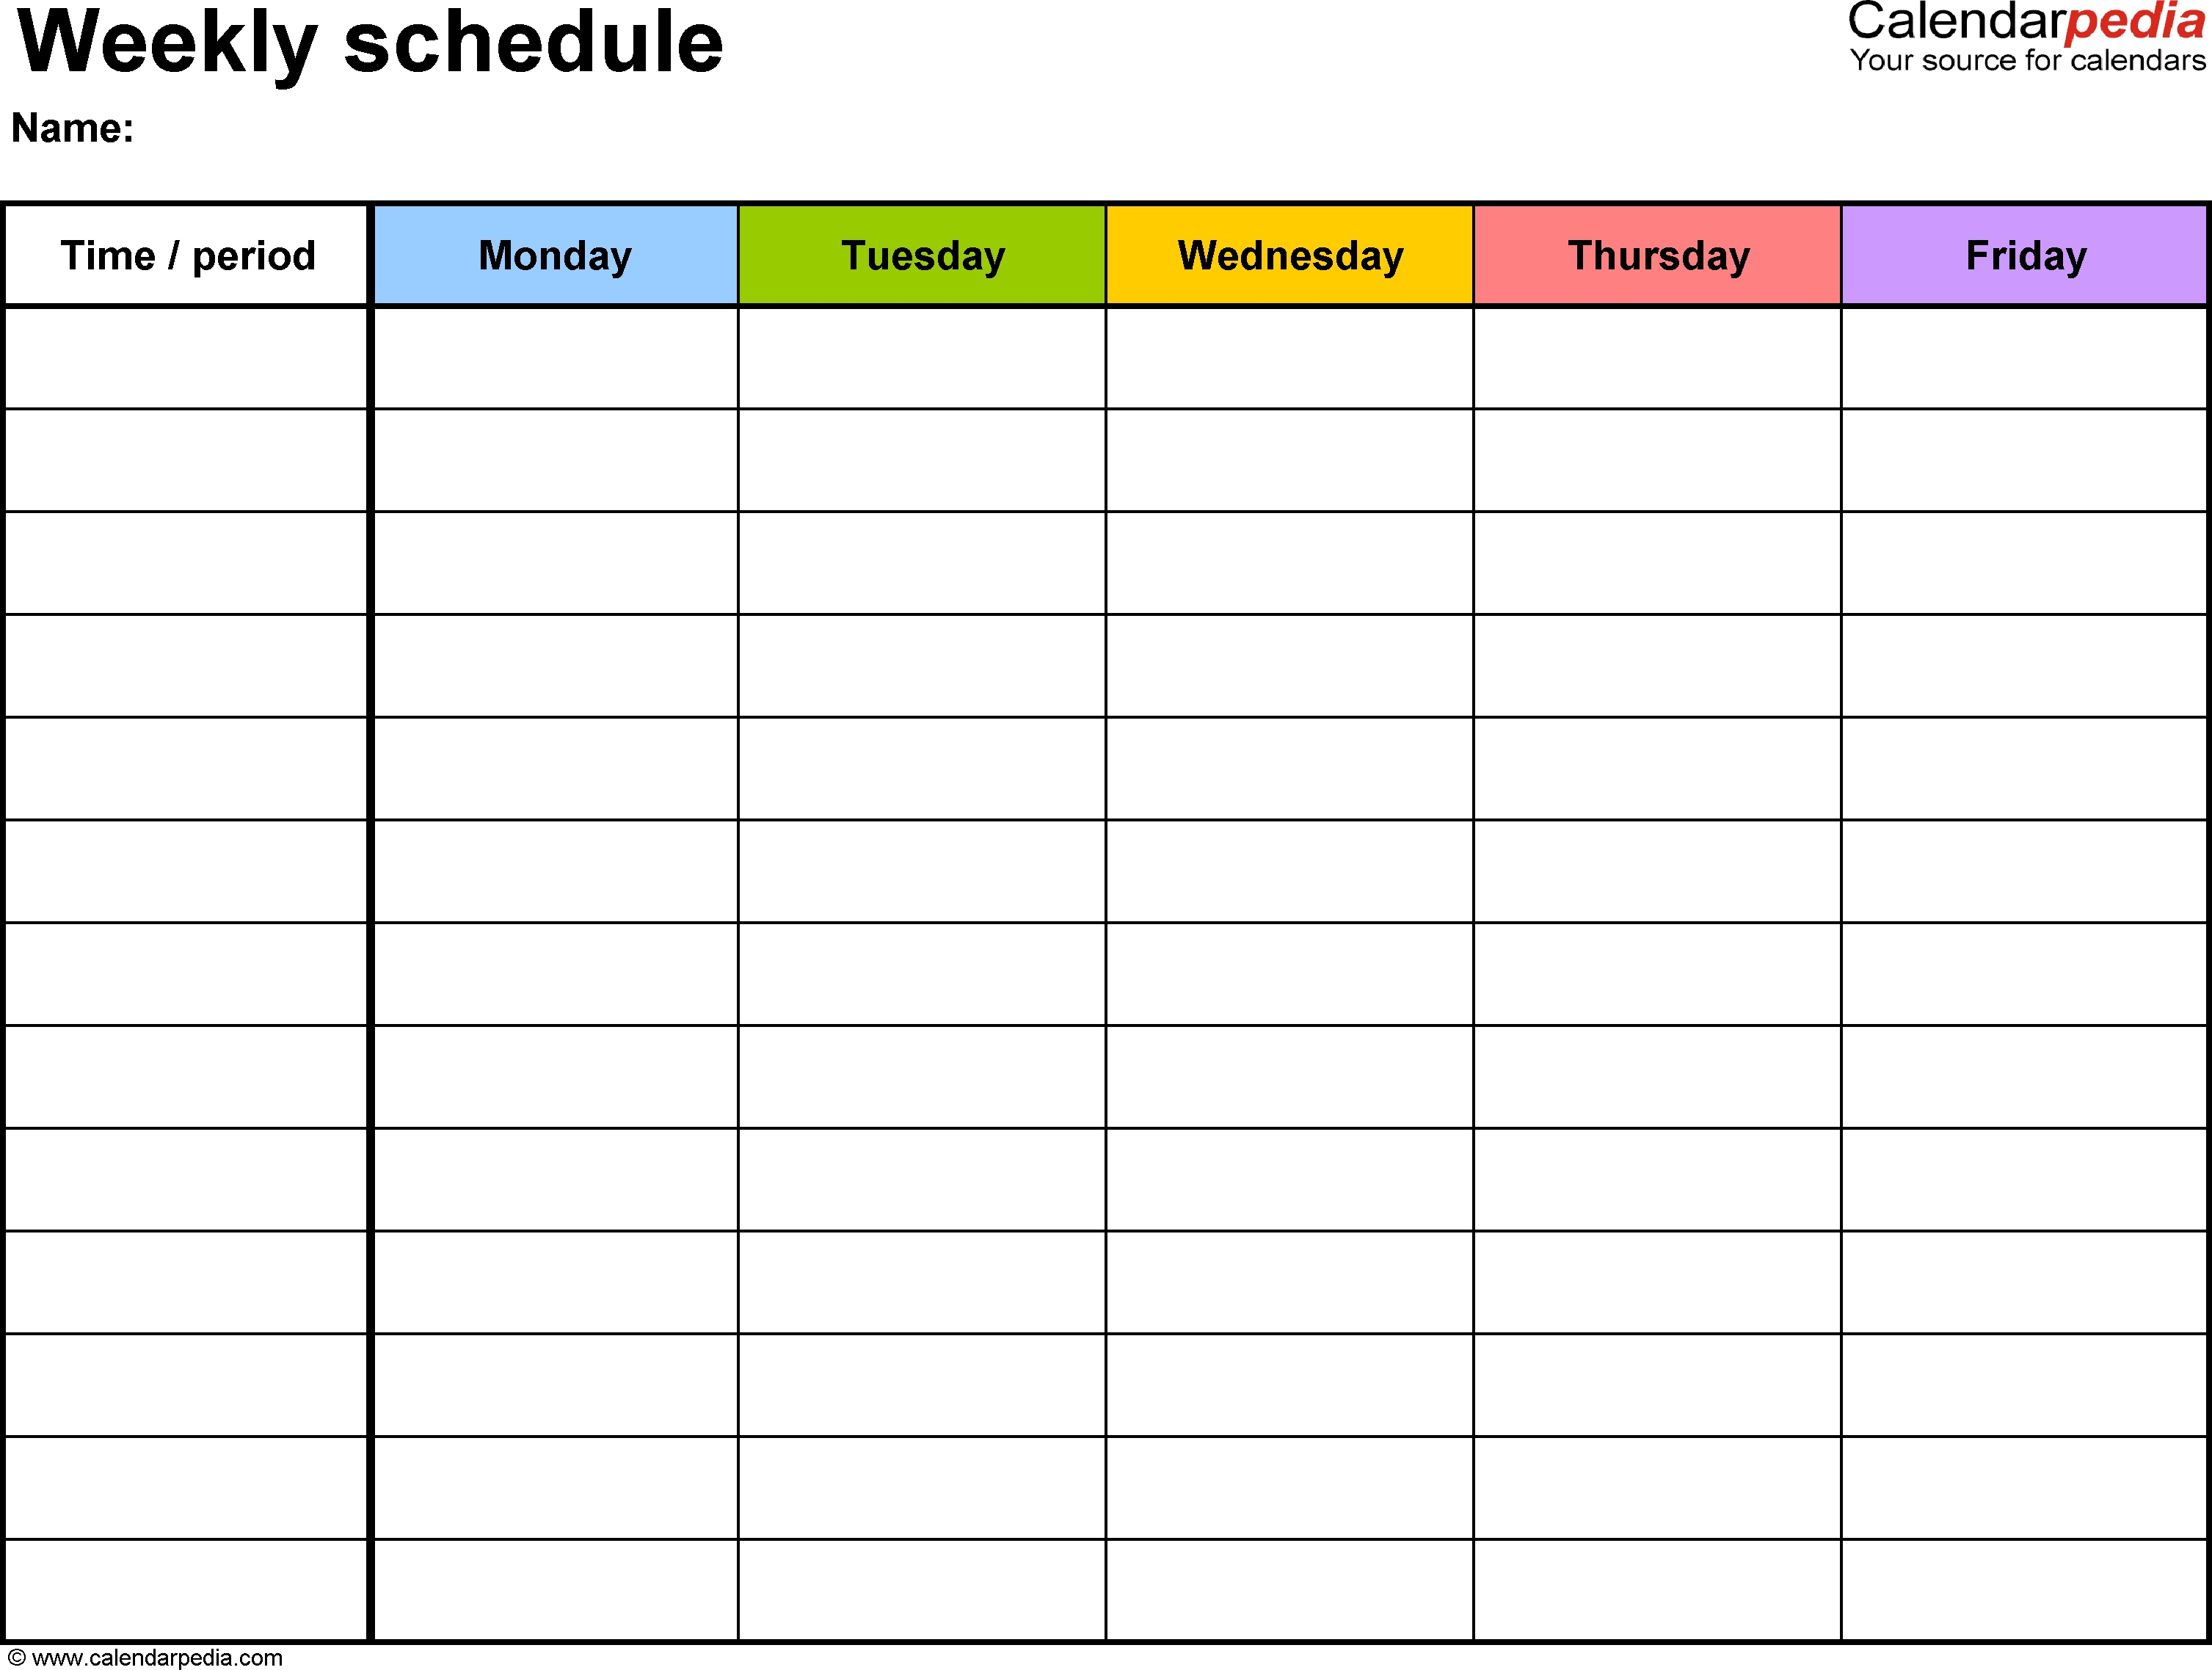 Free Weekly Schedule Templates For Excel - 18 Templates for Monthly Route Schedule Template Free